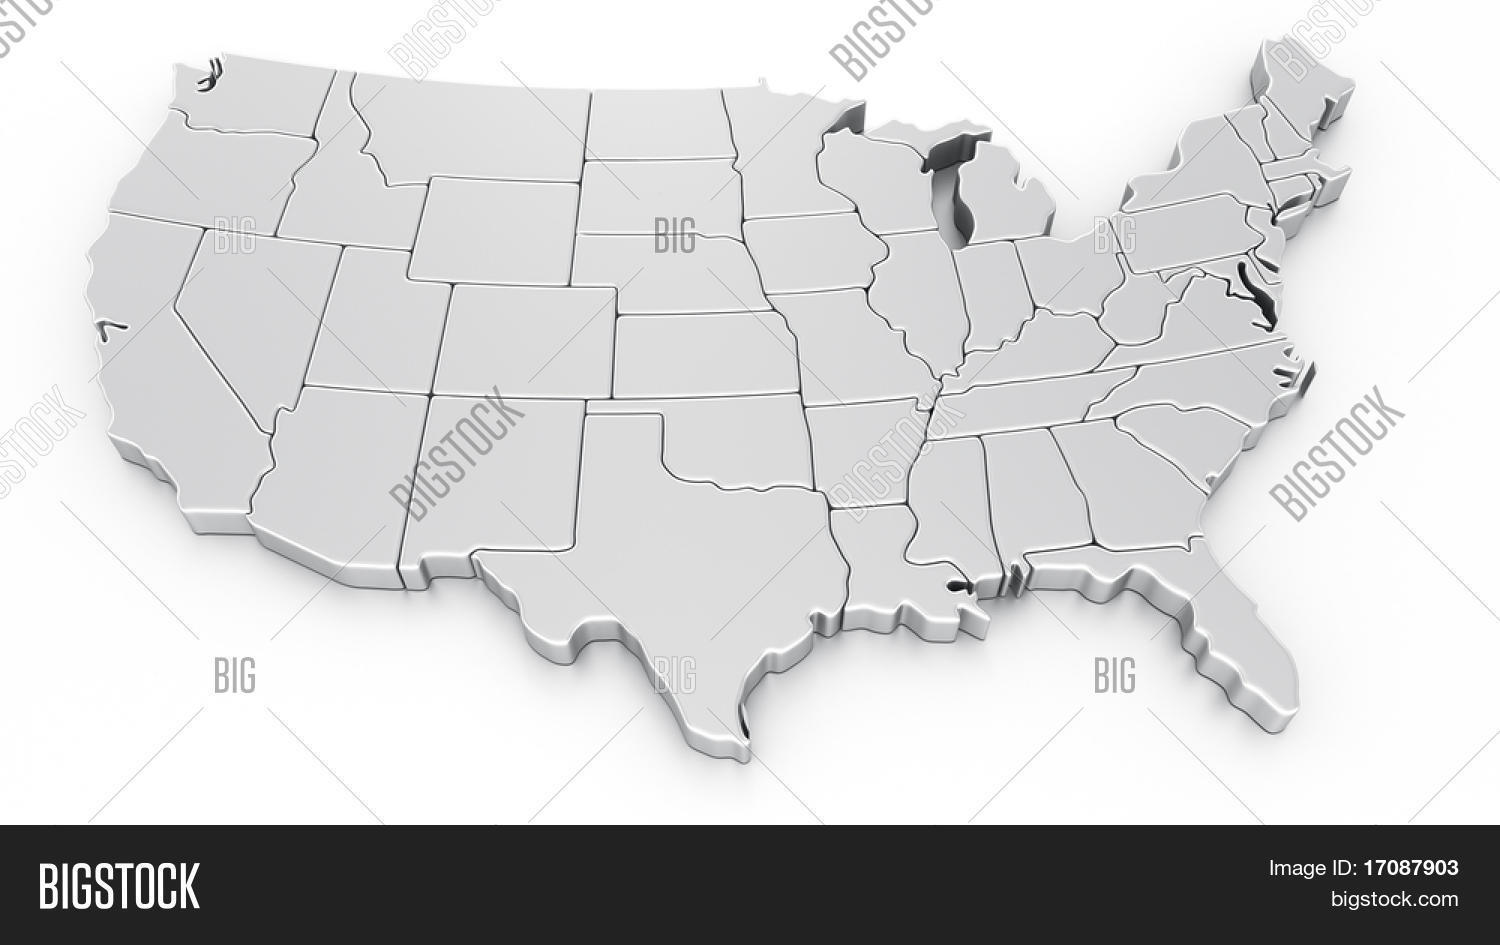 3d Rendering Map Usa Image Photo Free Trial Bigstock - Free-3d-us-map